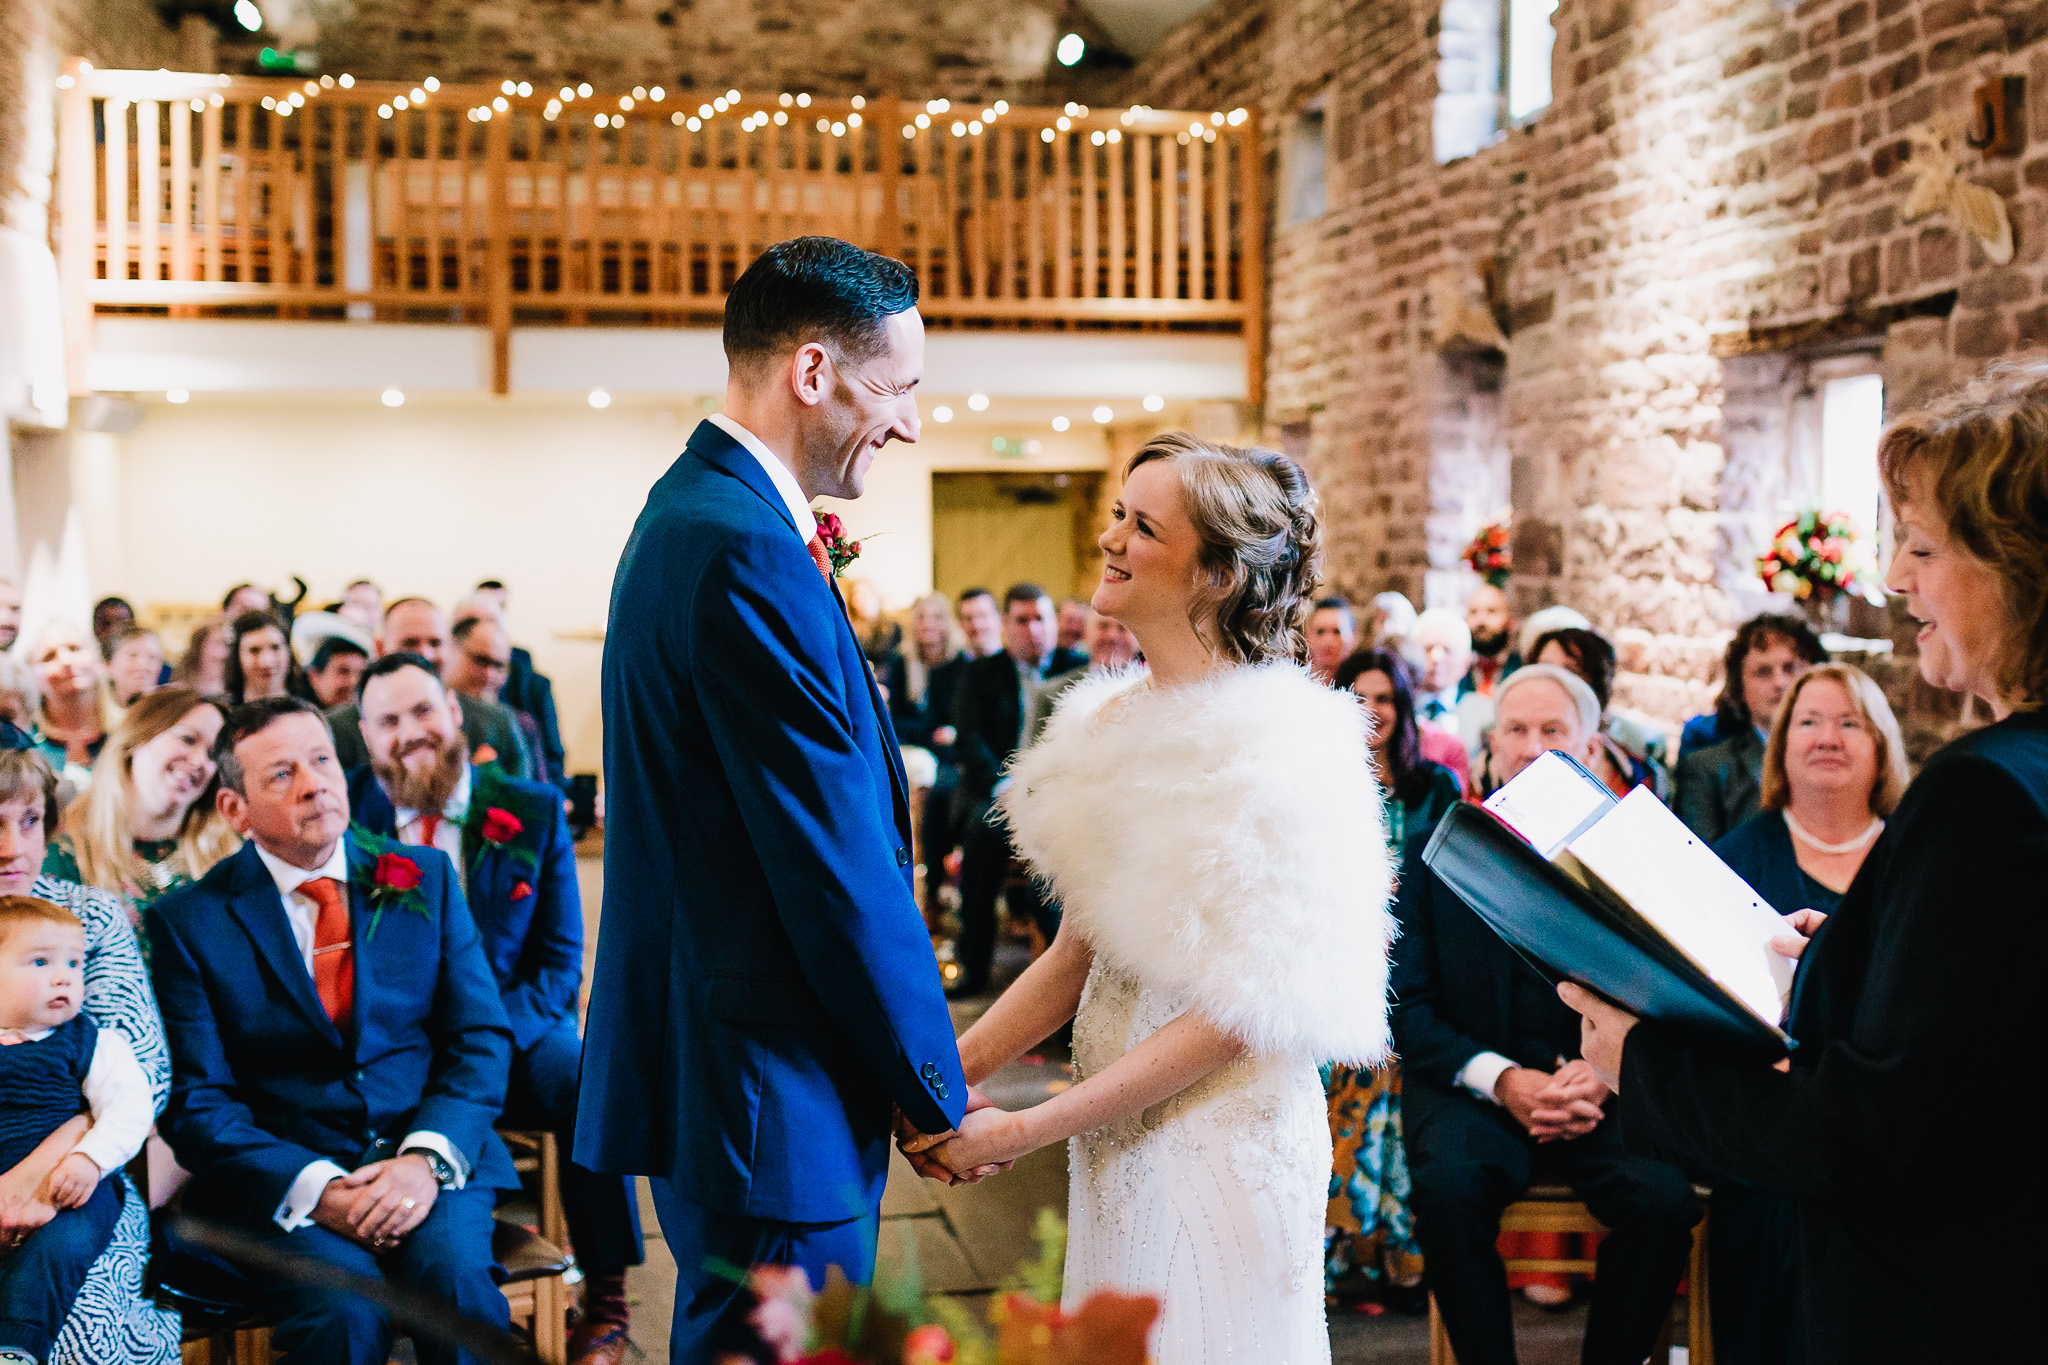 COUPLE GETTING MARRIED AT THE ASHES WEDDING BARNS IN LEEK